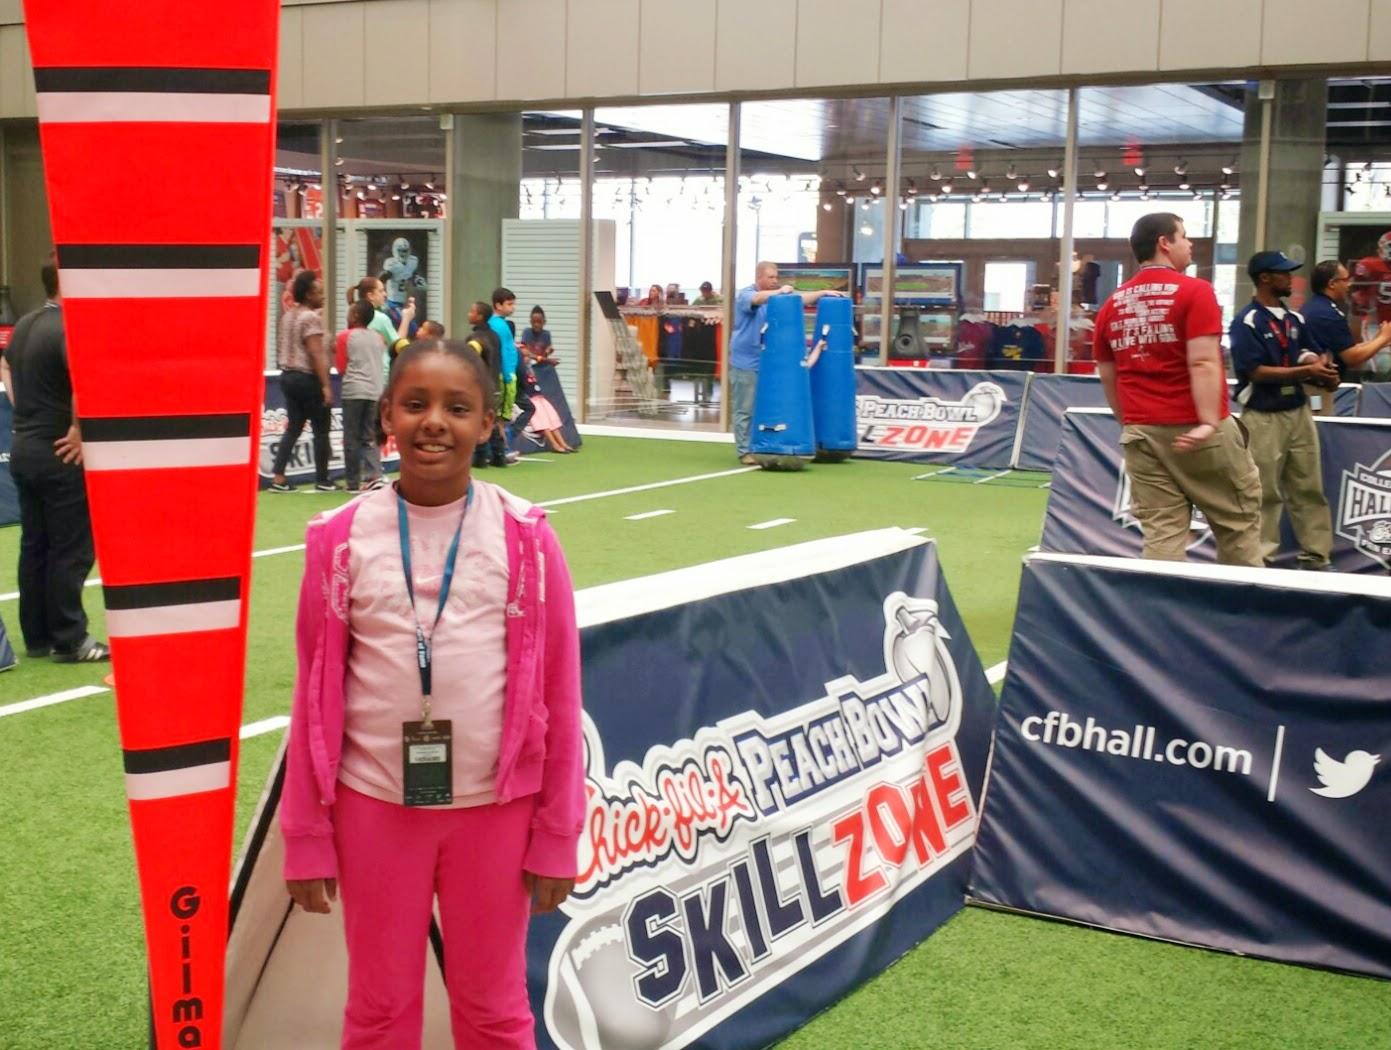 Girls and boys can have fun at the College Football Hall of Fame